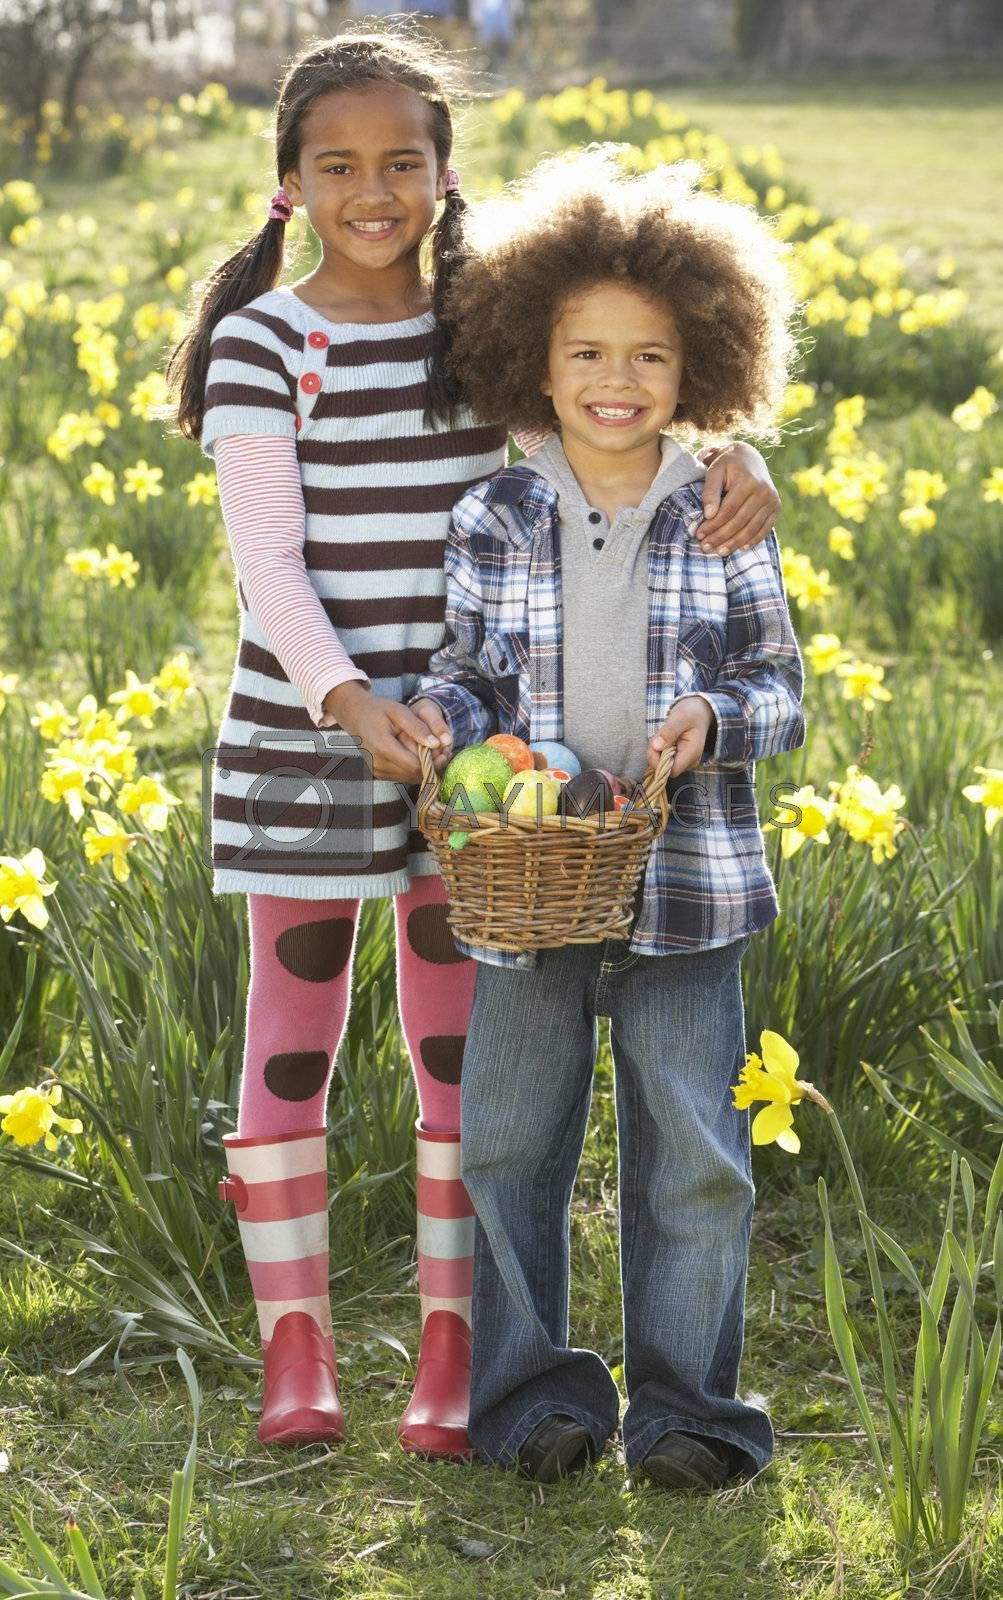 Brother And Sister Having Easter Egg Hunt In Daffodil Field by OMG Images